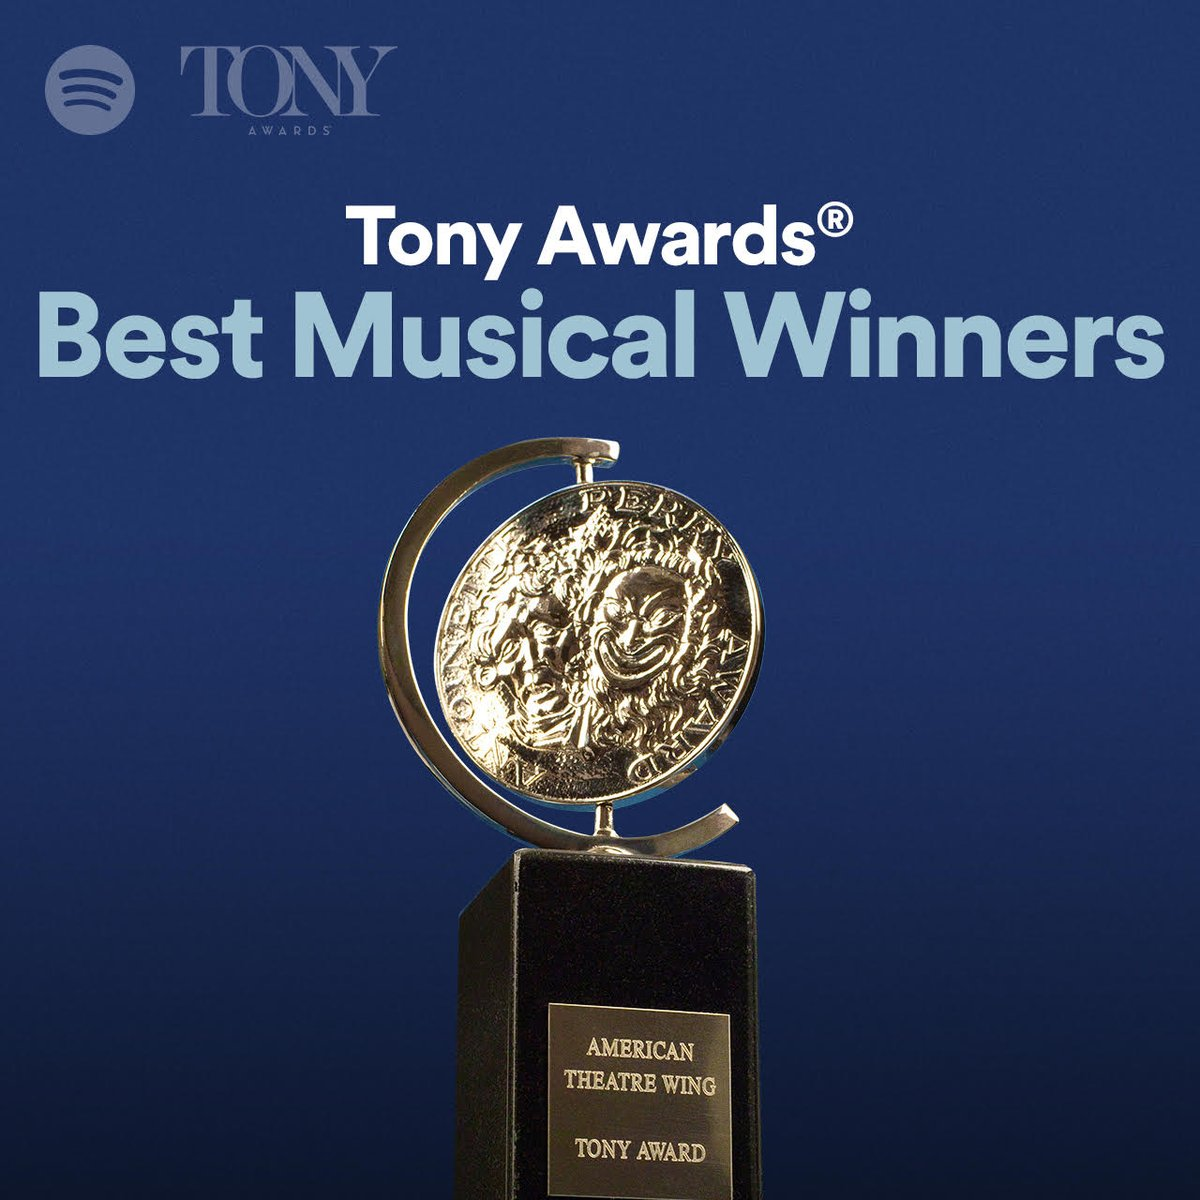 Weekend plans? 🎧 We're listening to awesome new @Spotify playlists of songs from 🎶 Best Musical and Best Score 🎶 #TonyAwards winners. Find out which tunes they chose and listen + repeat! Best Musical:  Best Score: